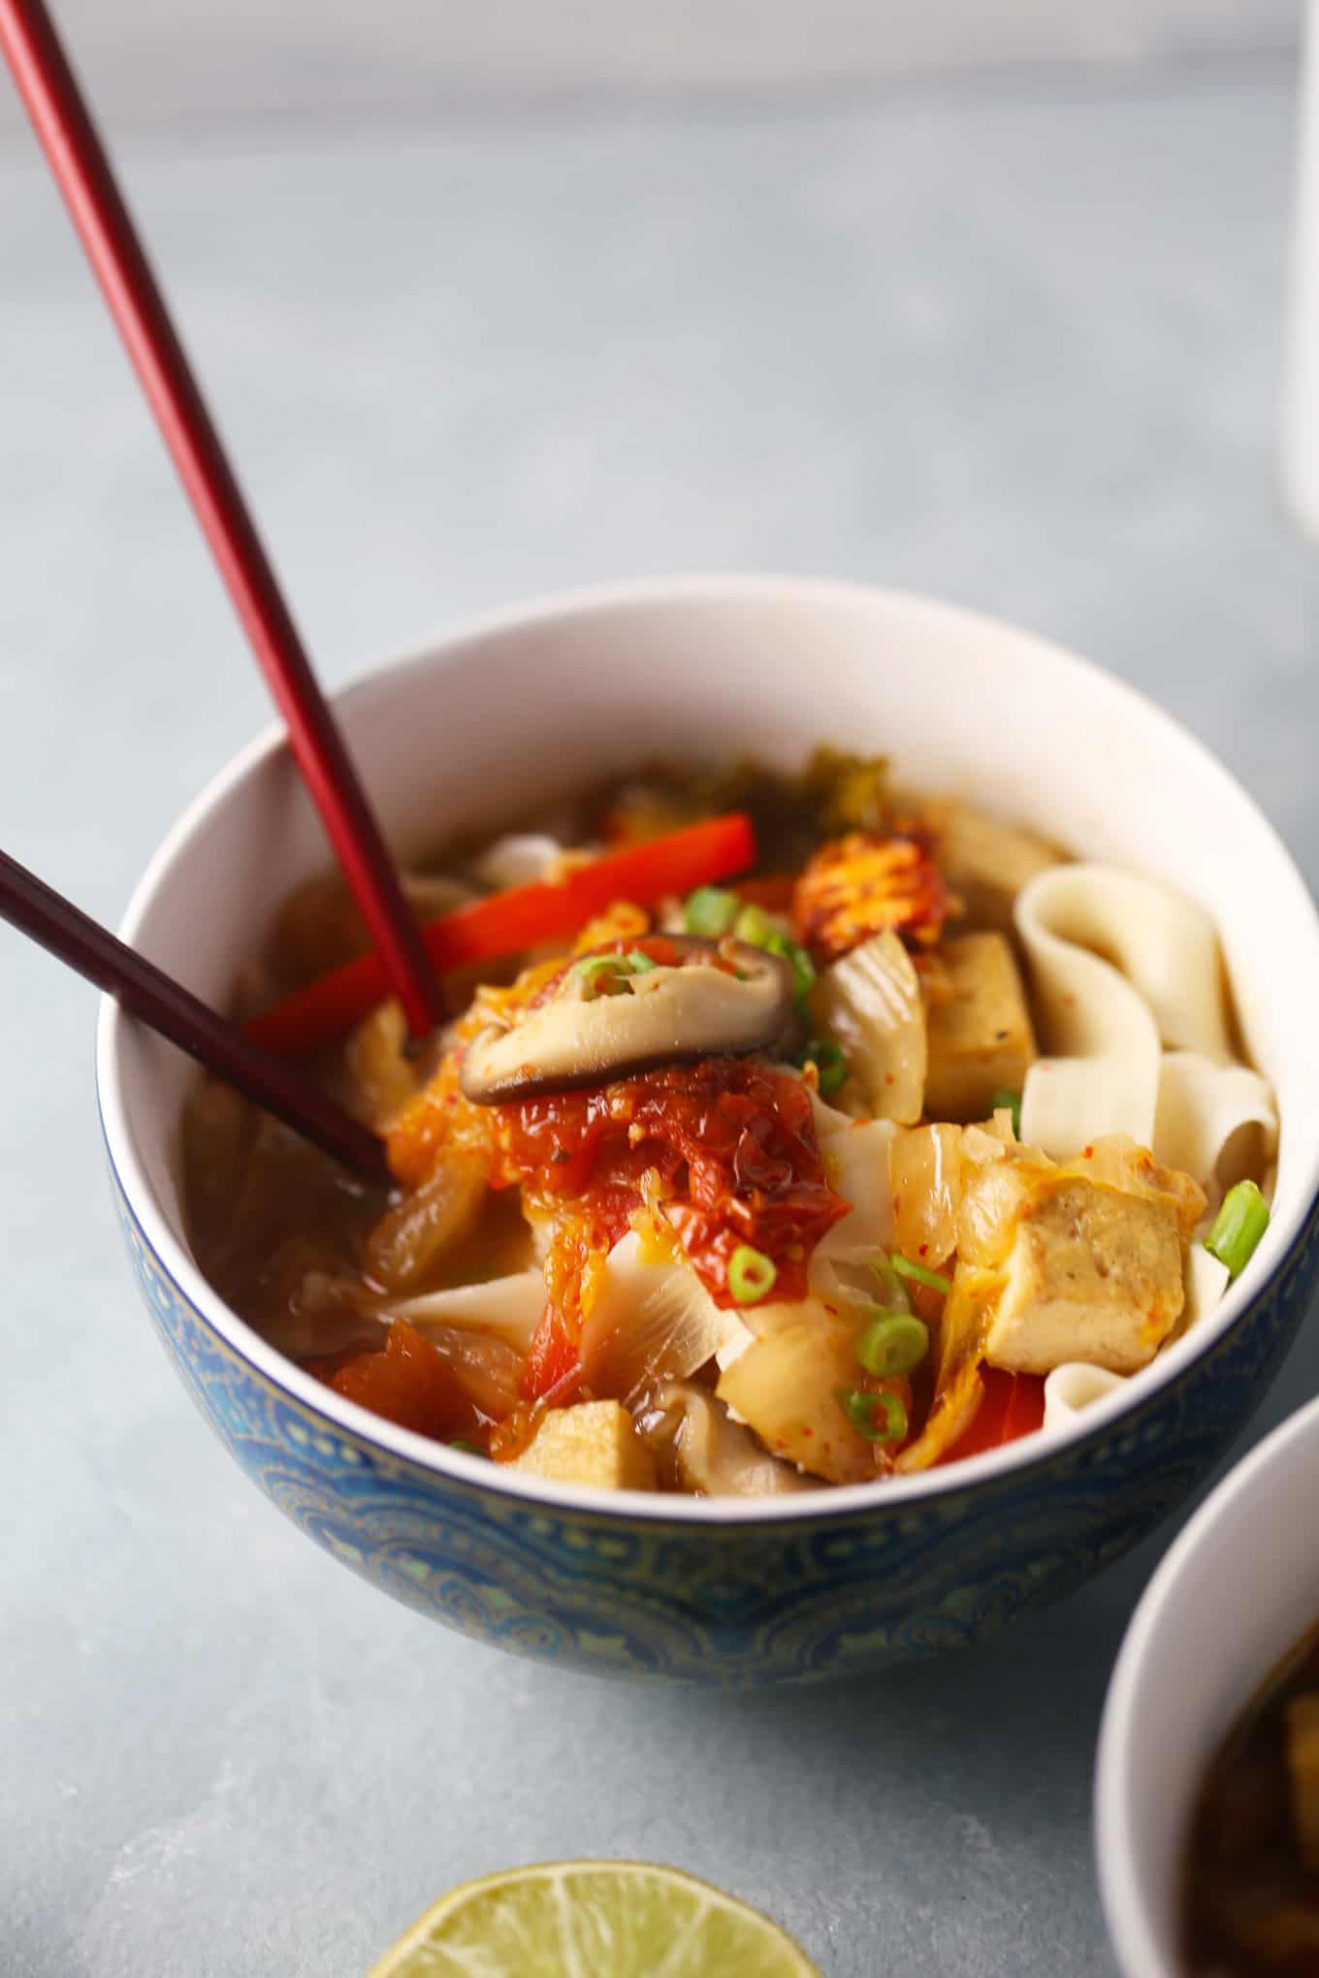 Japanese Udon Noodles with Kimchi Miso Broth - recipe vegetarian udon noodle soup